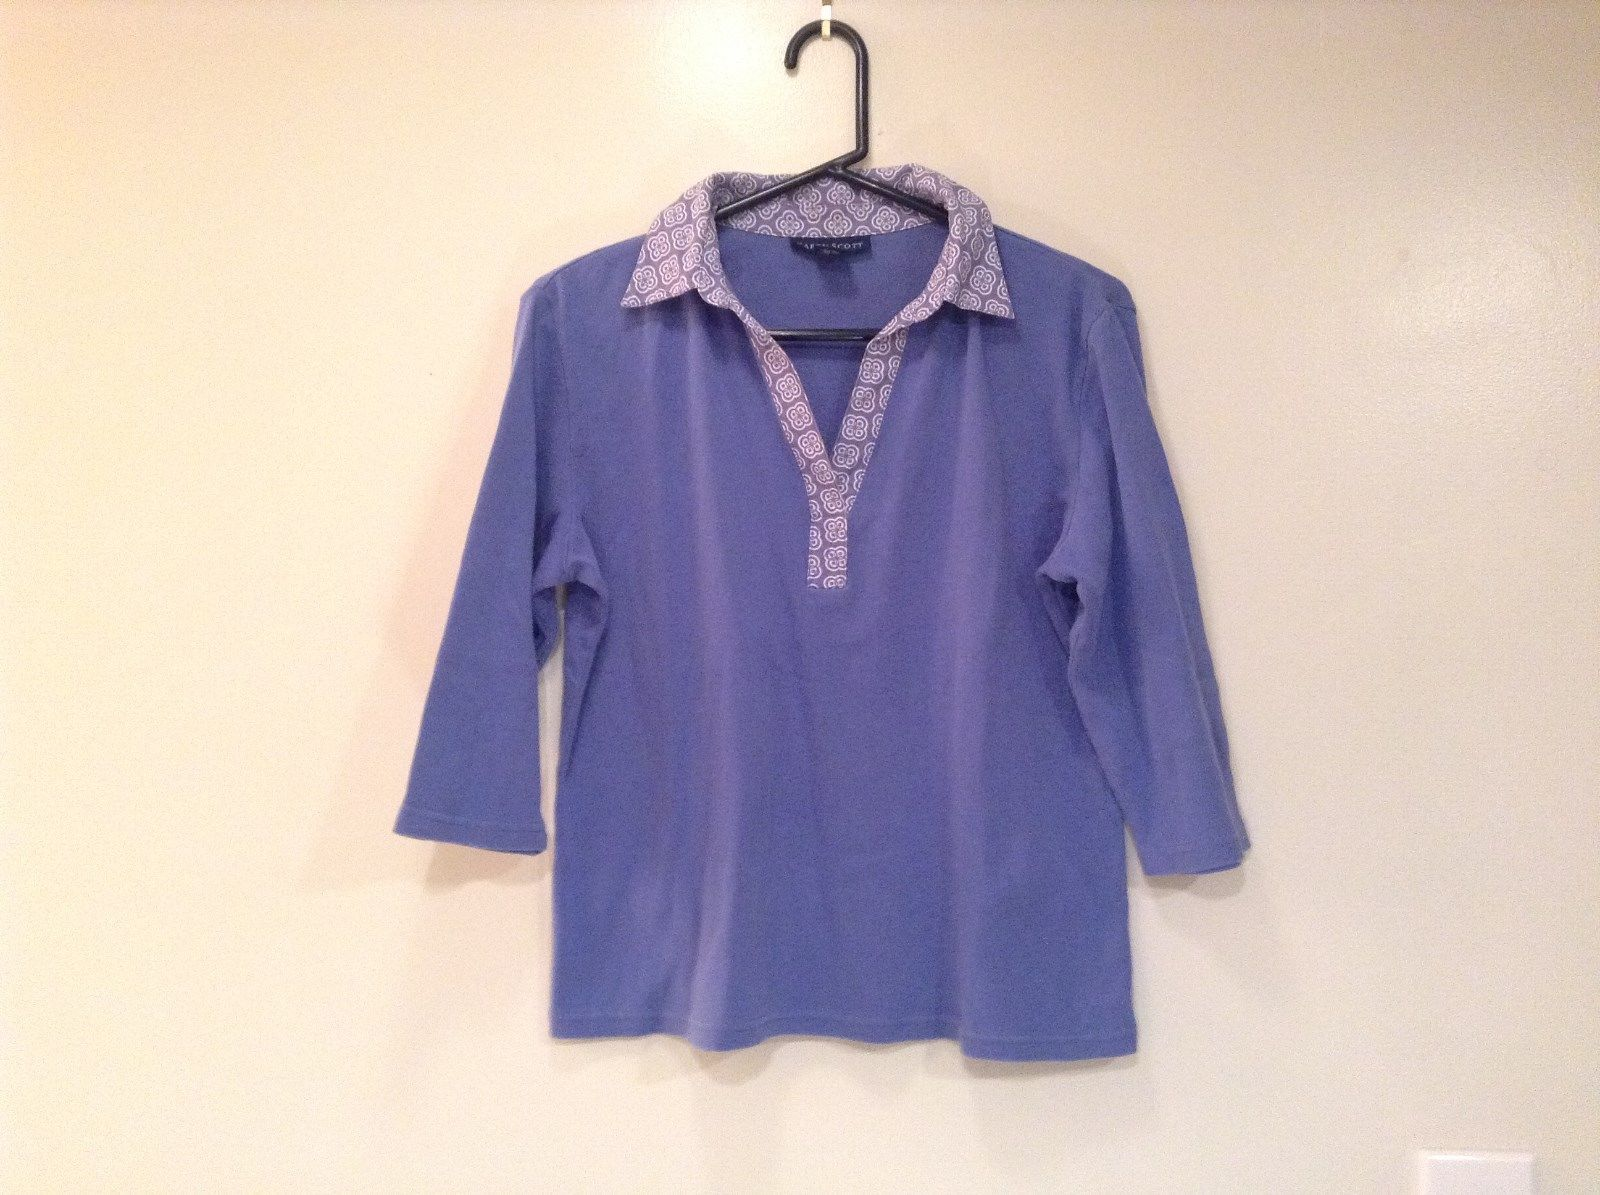 Lavender Blue Karen Scott Three Quarter Length Sleeves V Neck Top Size Medium